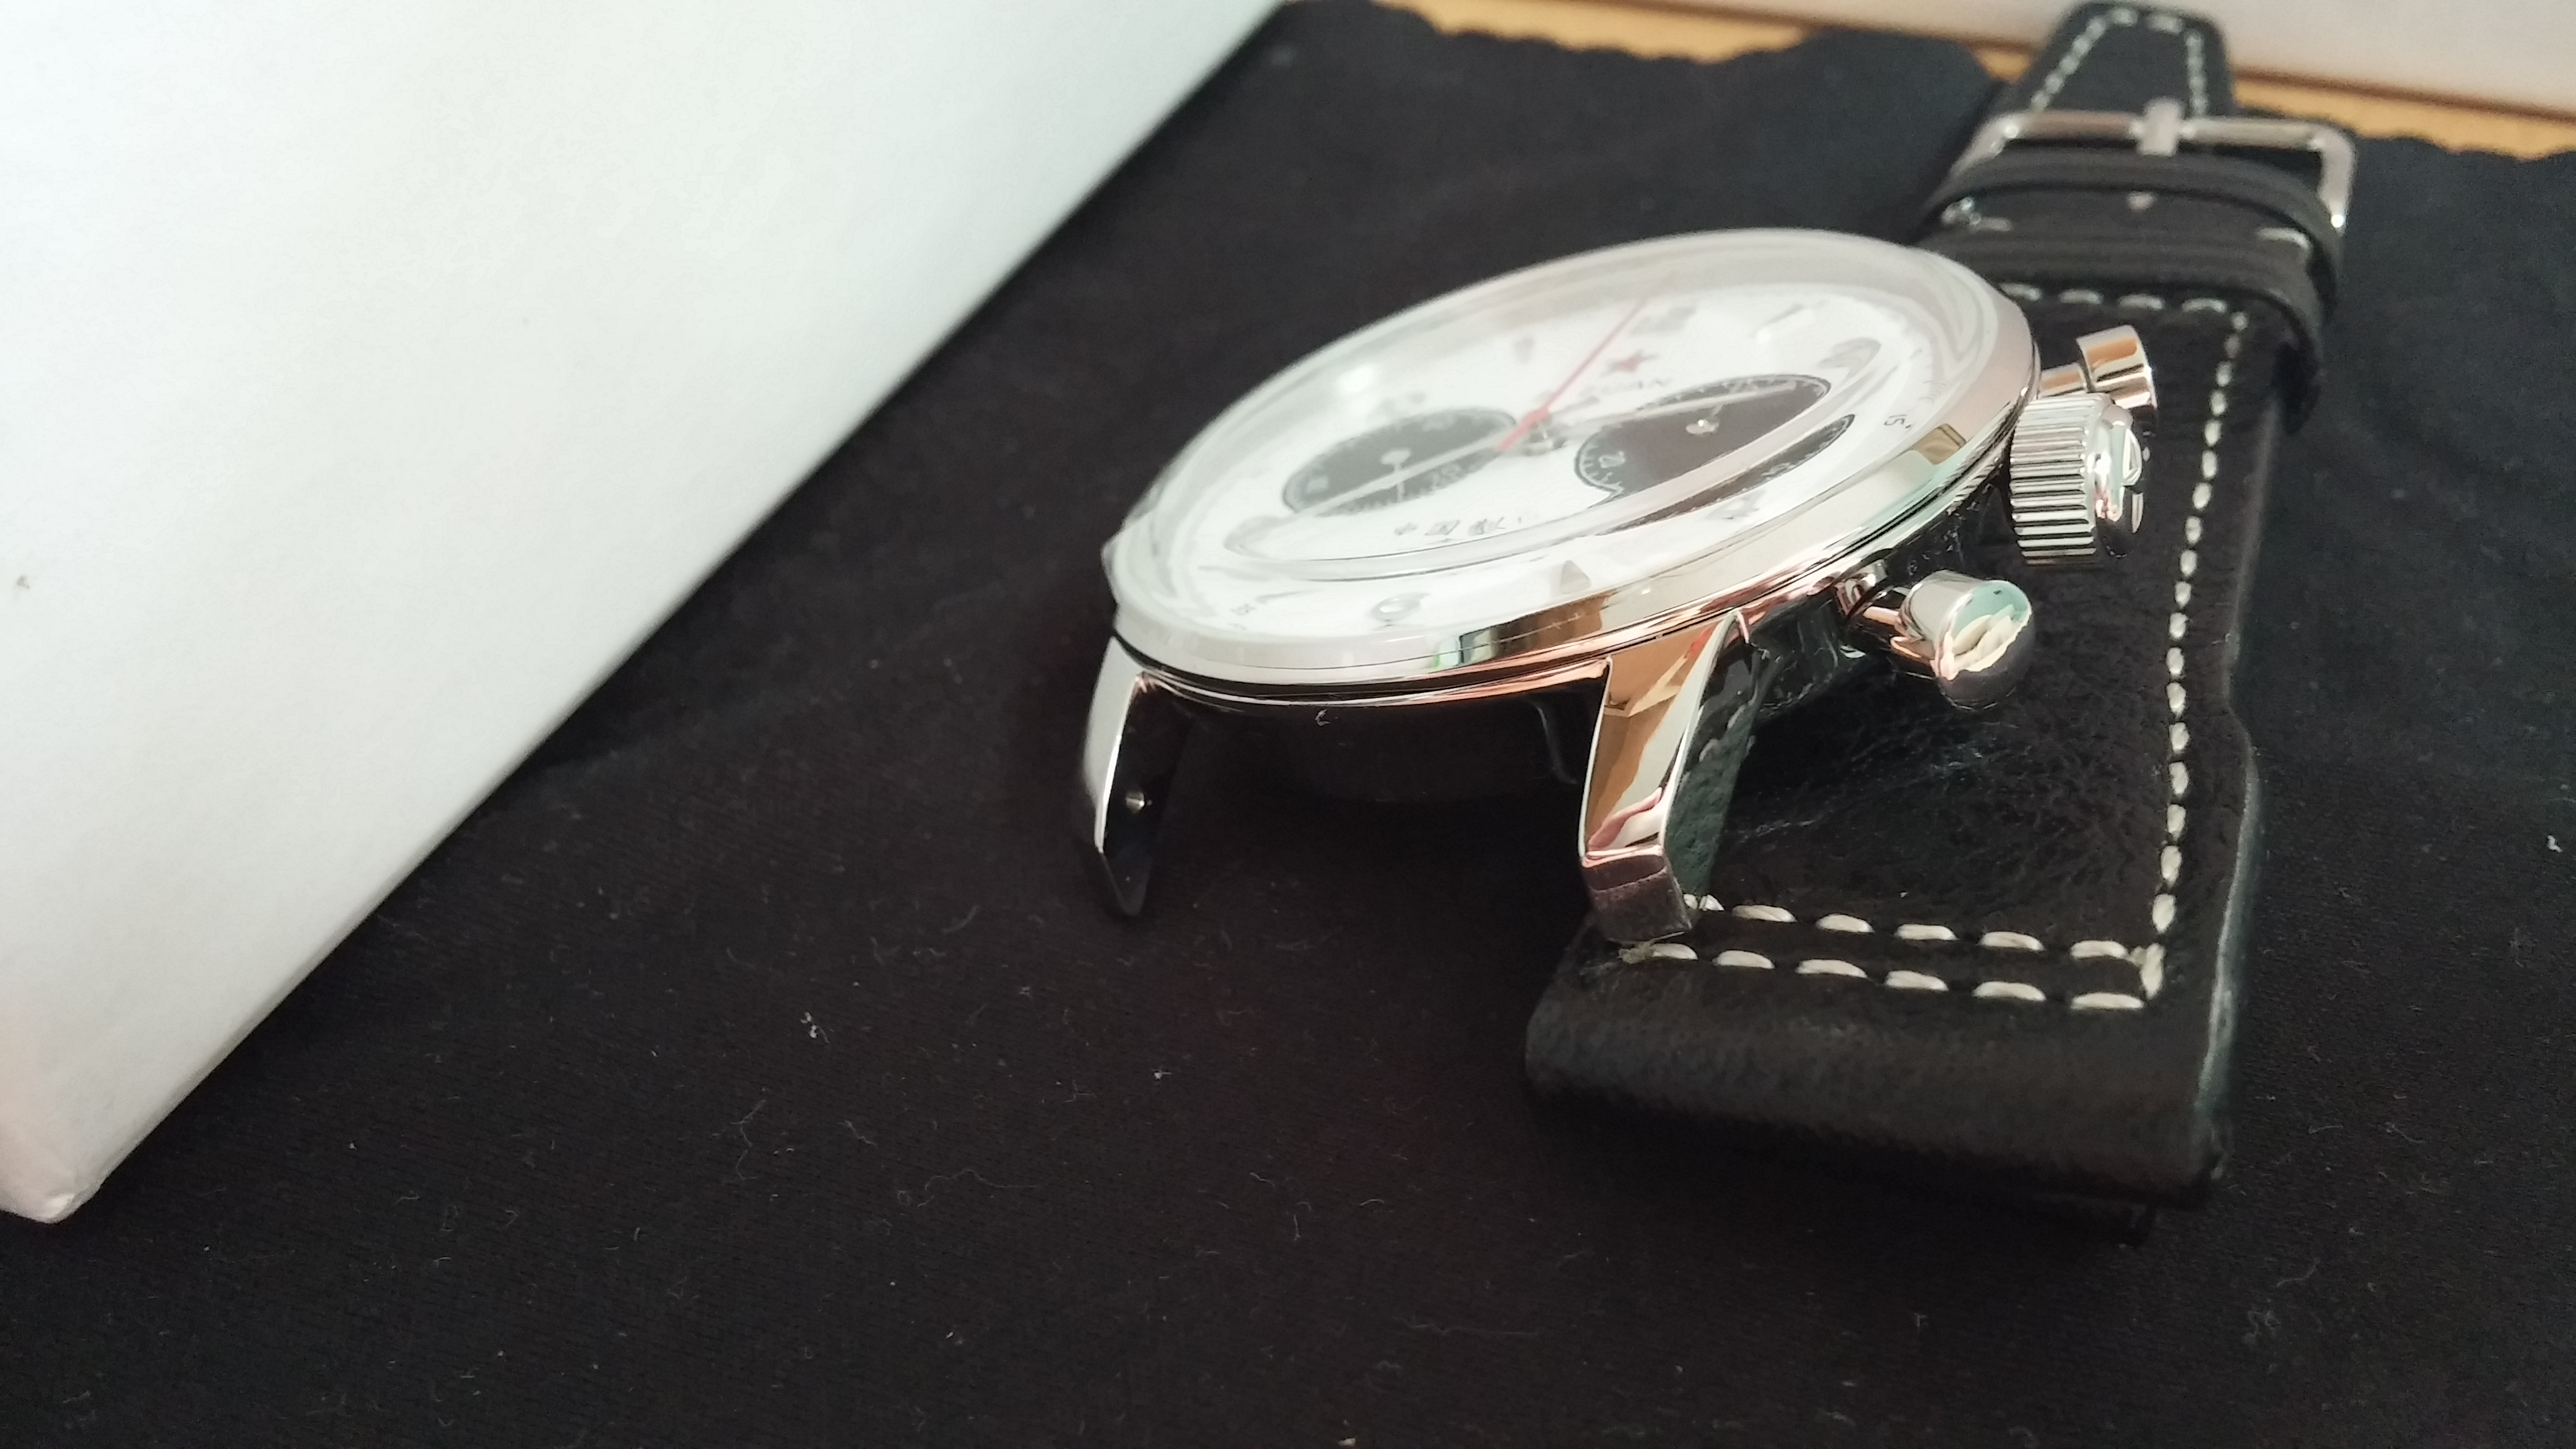 sofa seconds mart waco tx beauty of a venus 175 manually wound chronograph movement ...